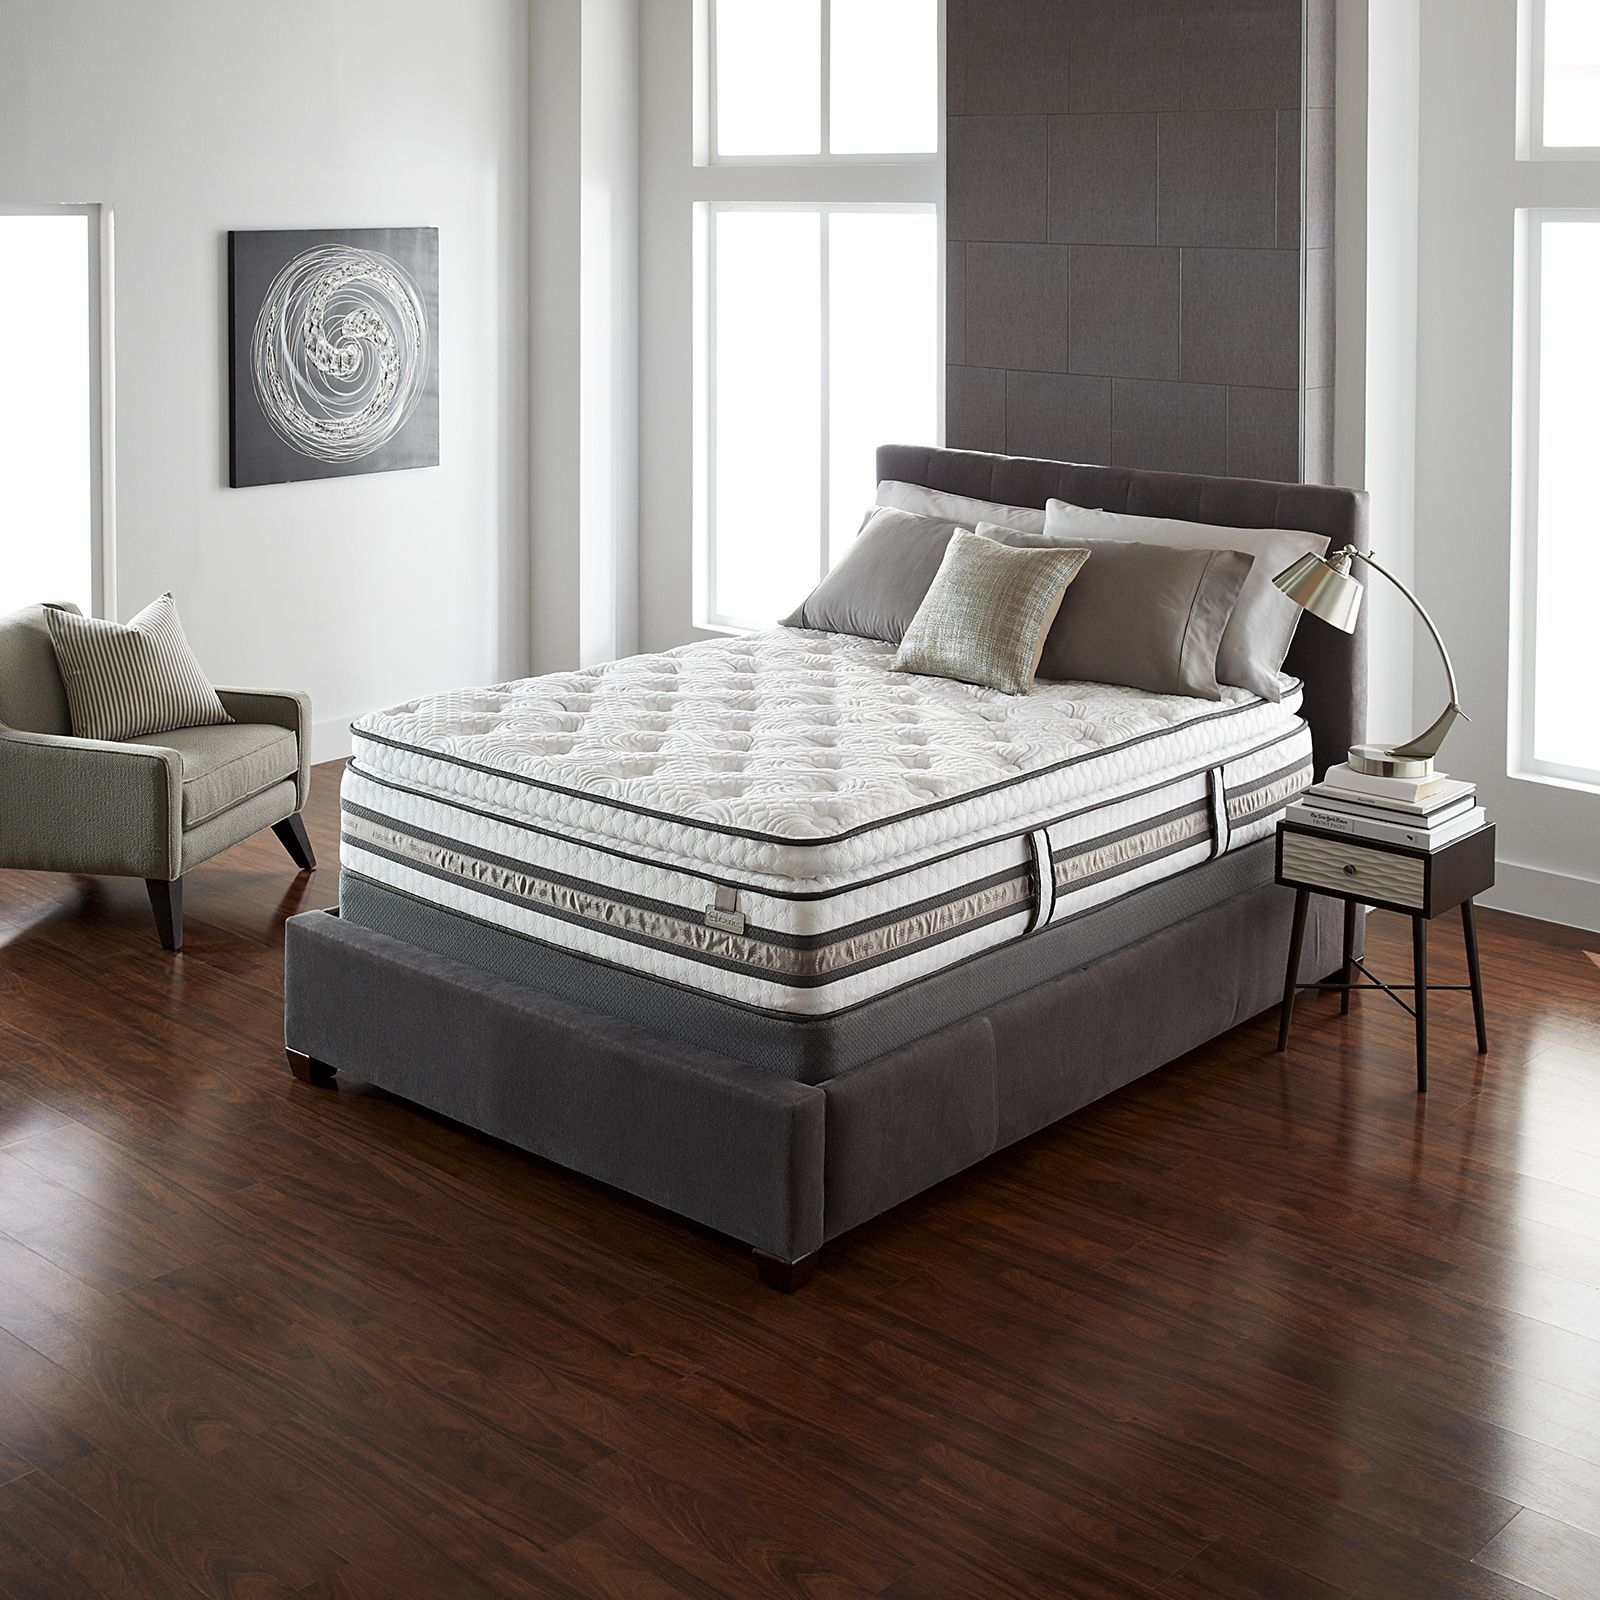 Iseries Merit Super Pillowtop King Mattress Only  Sears  Mattress Sets King Mattress Set